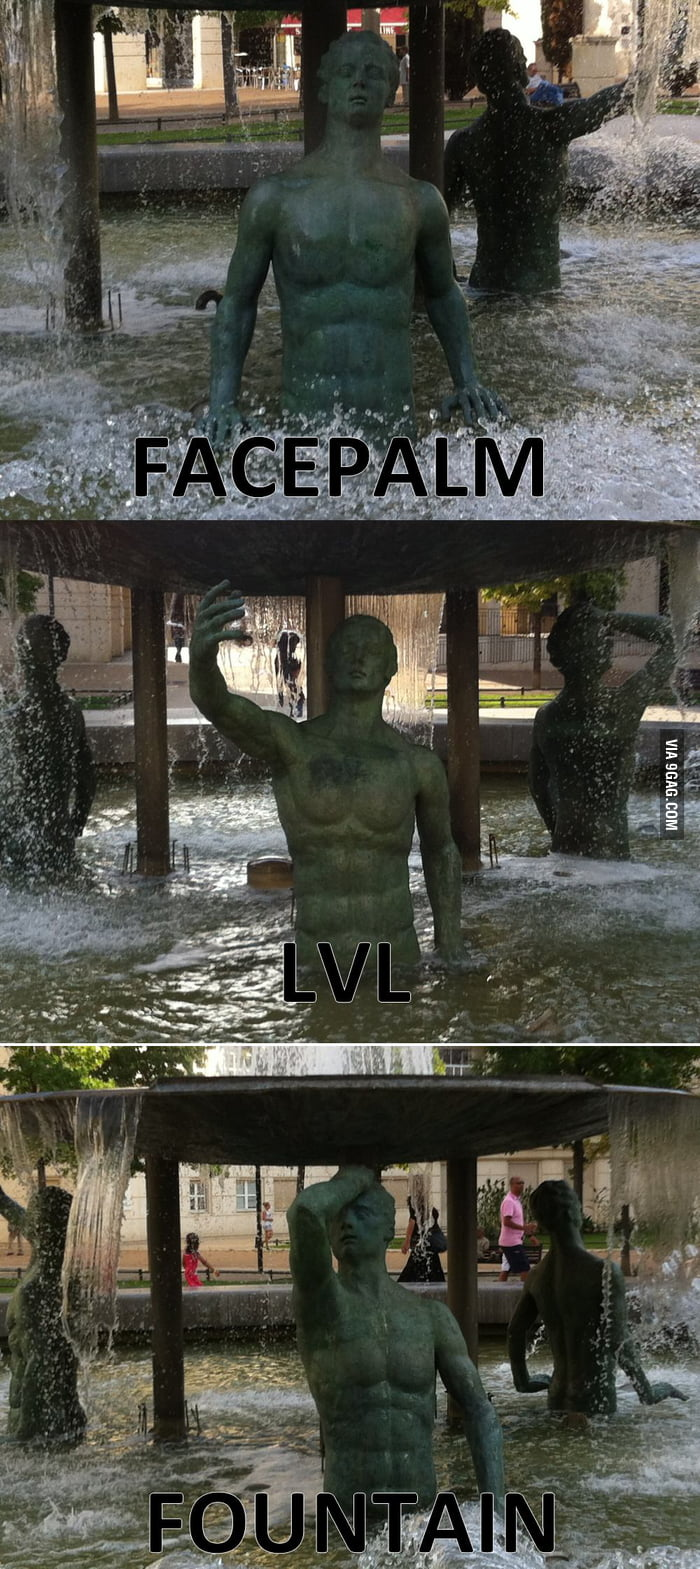 Meanwhile in France: Facepalm lvl ... FOUNTAIN